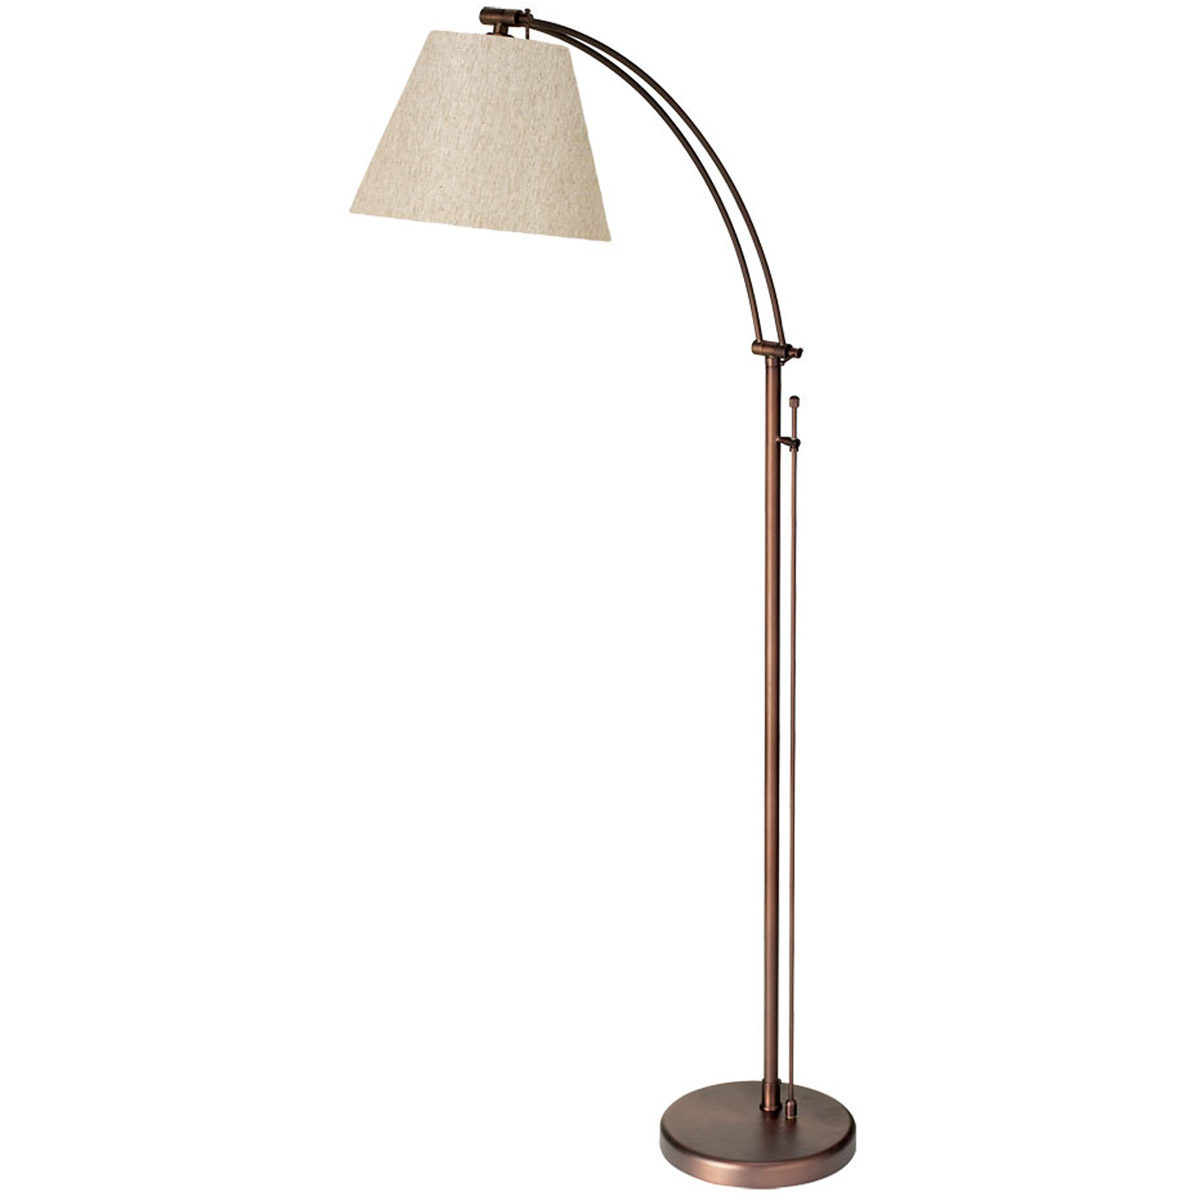 Adjustable Gooseneck Floor Lamp